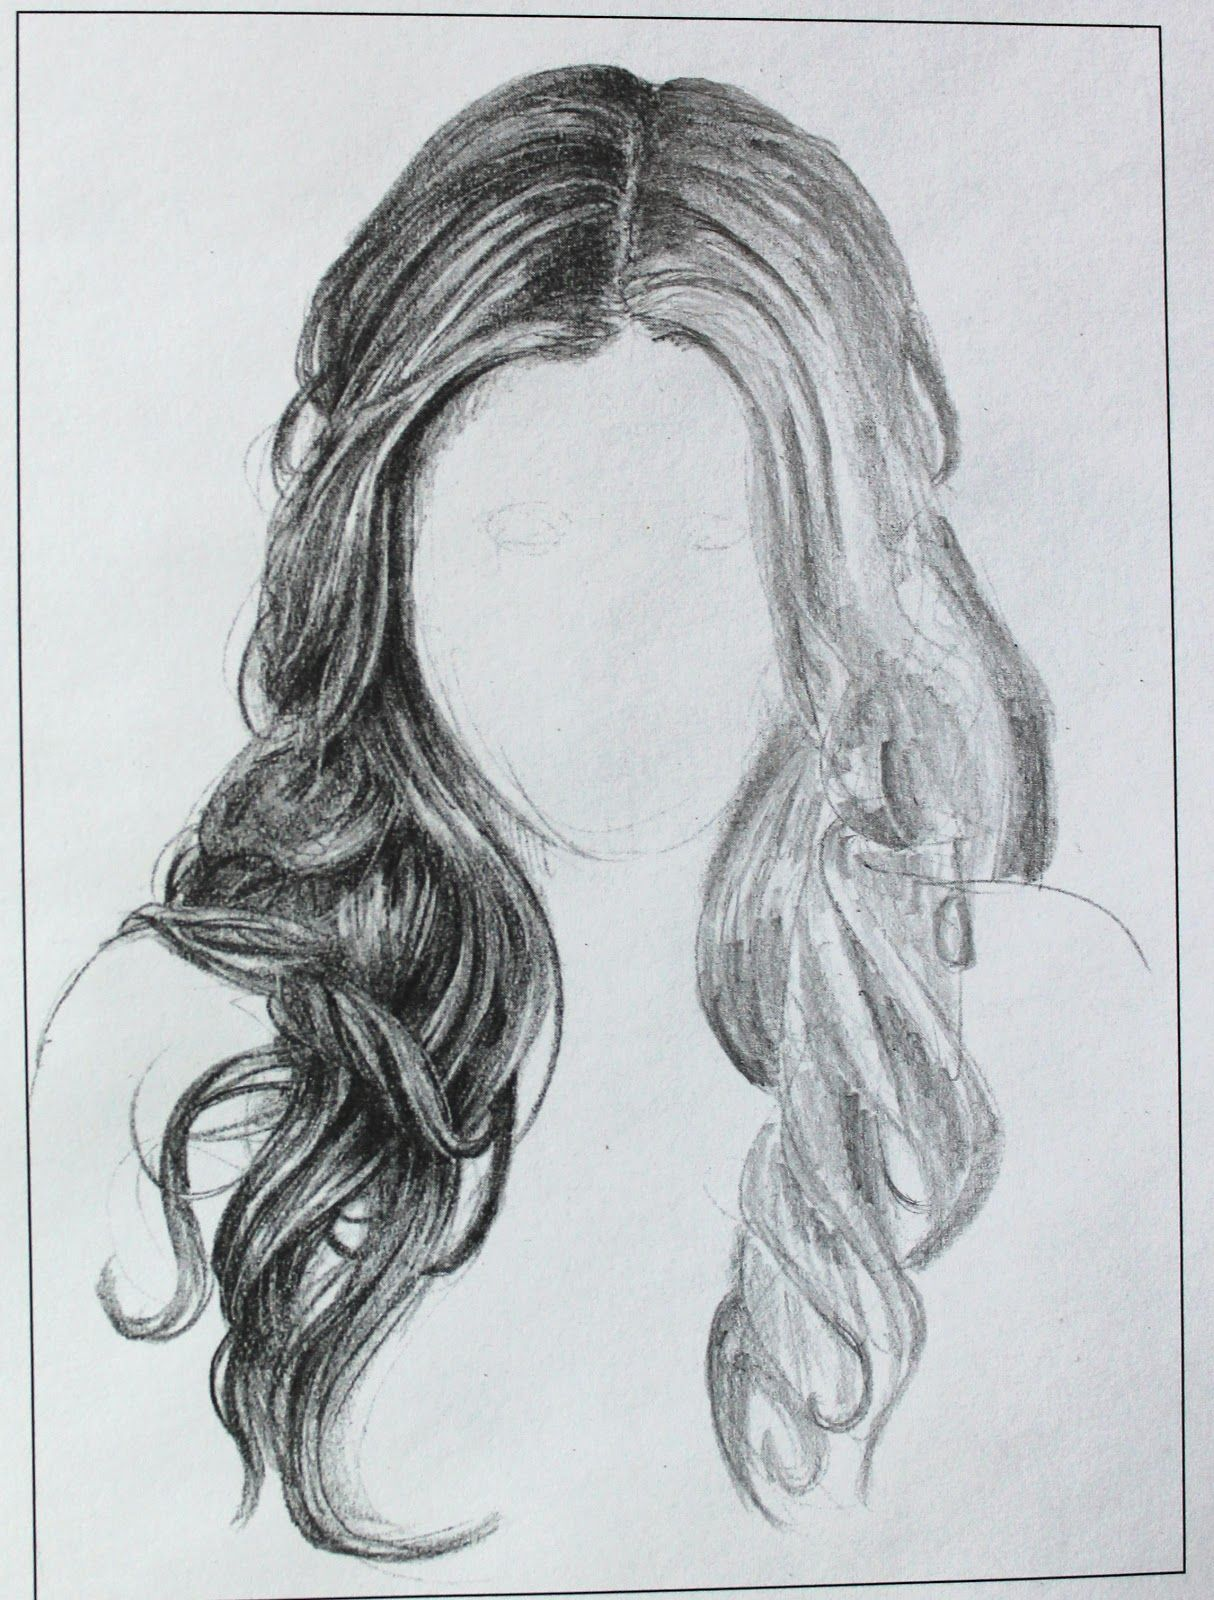 Hair Sketches Long Hair Sketches The Left Side Of The Sketch Hair Sketch How To Draw Hair Drawings Of Friends